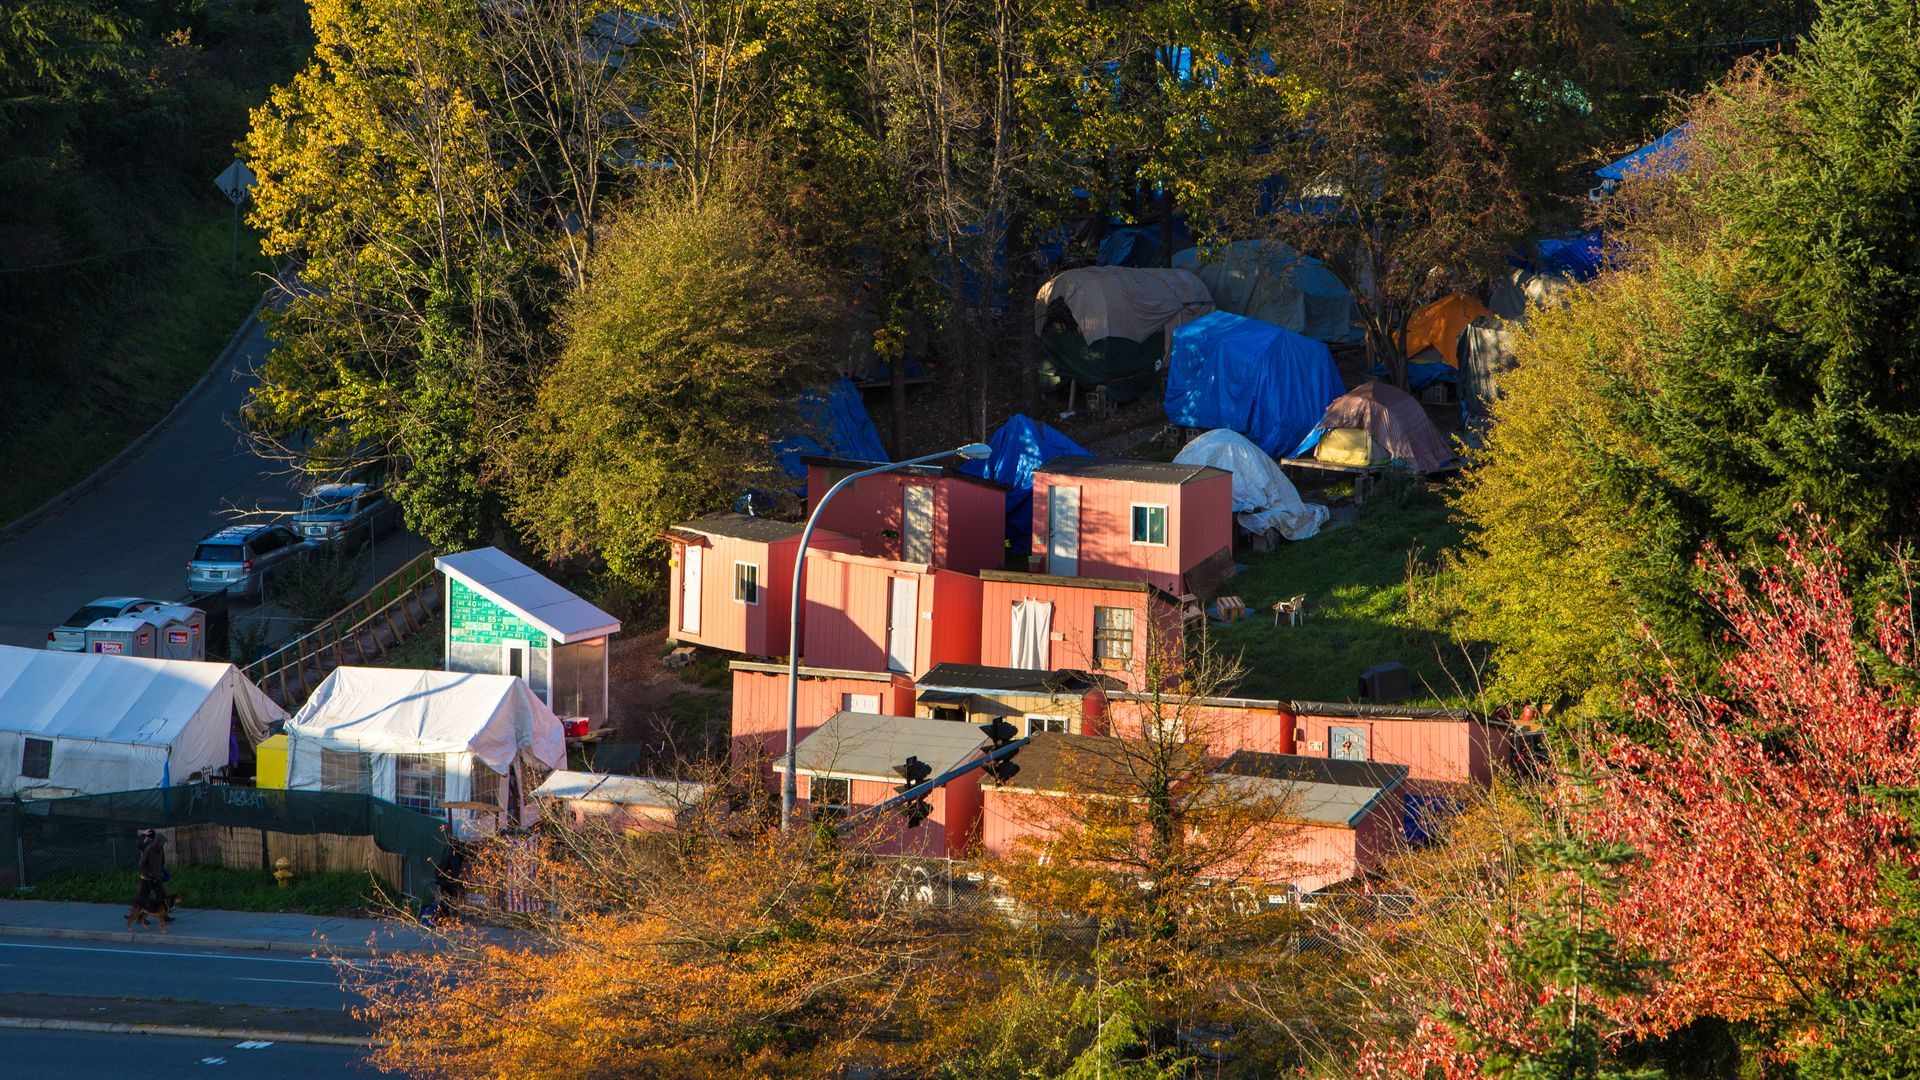 A homeless encampment known as Nickelsville, in Seattle, Washington.